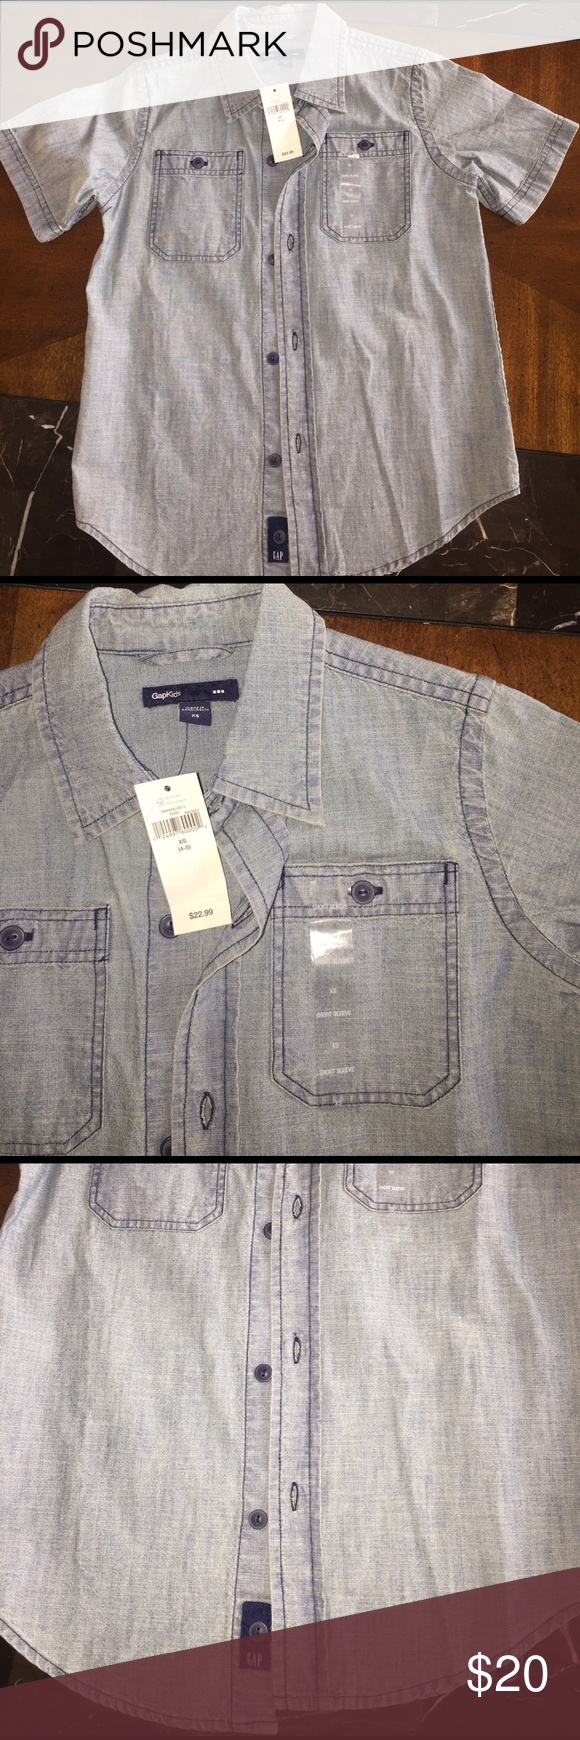 """GAP shirt (xs 4-5) ✨OPEN TO OFFERS, JUST SUBMIT YOUR BEST OFFER THROUGH THE """"OFFER"""" option OR BUNDLE FOR A DISCOUNT & ONE SHIPPING COST 😃✨.    ⭐️NWT ⭐️Gap button up shirt for boys, size XS 4-5. Denim look. GAP Shirts & Tops Button Down Shirts"""